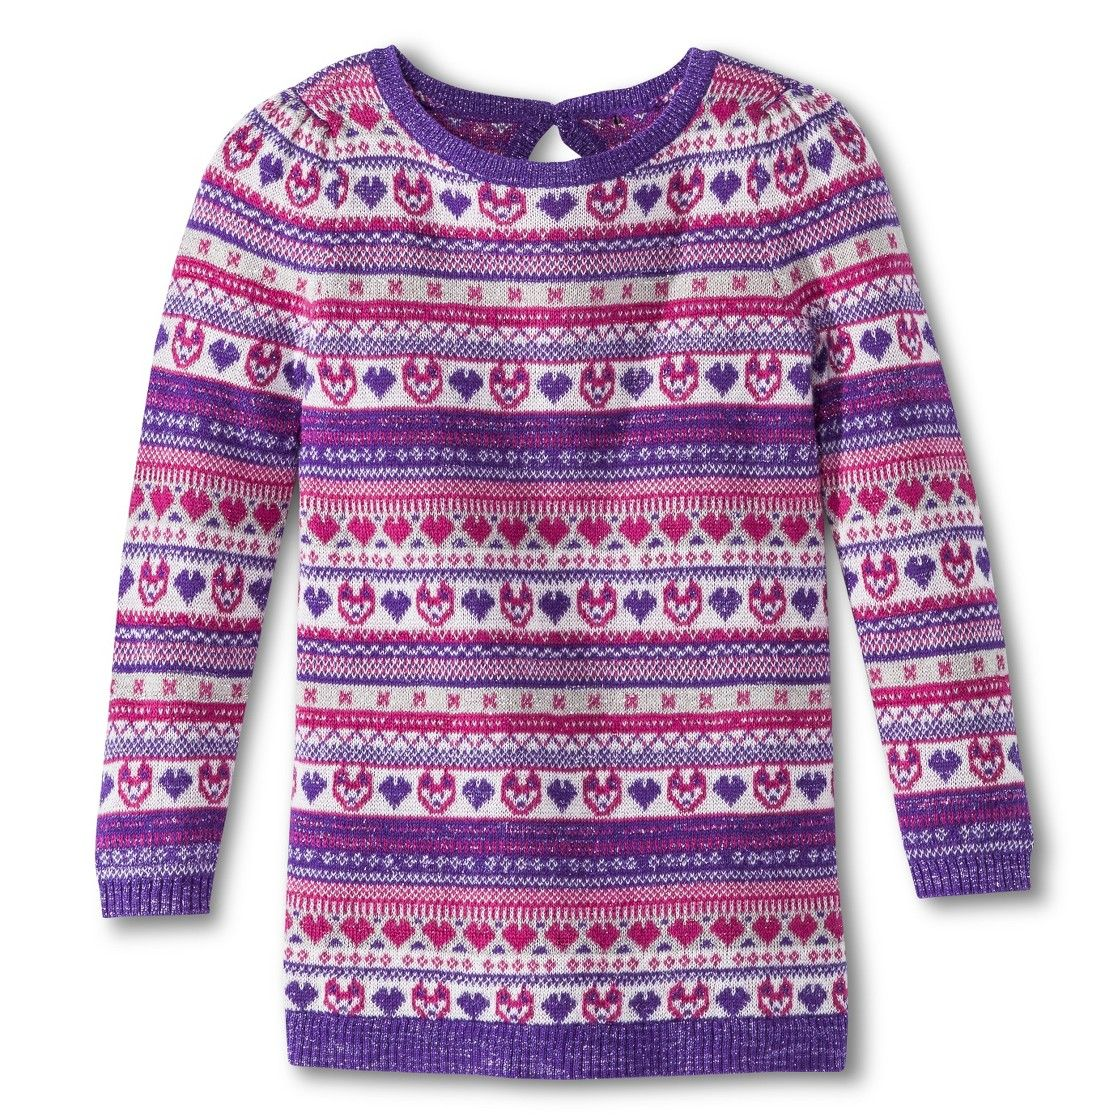 Infant Toddler Girls' Long Sleeve Fair Isle Sweater Tunic - Purple ...